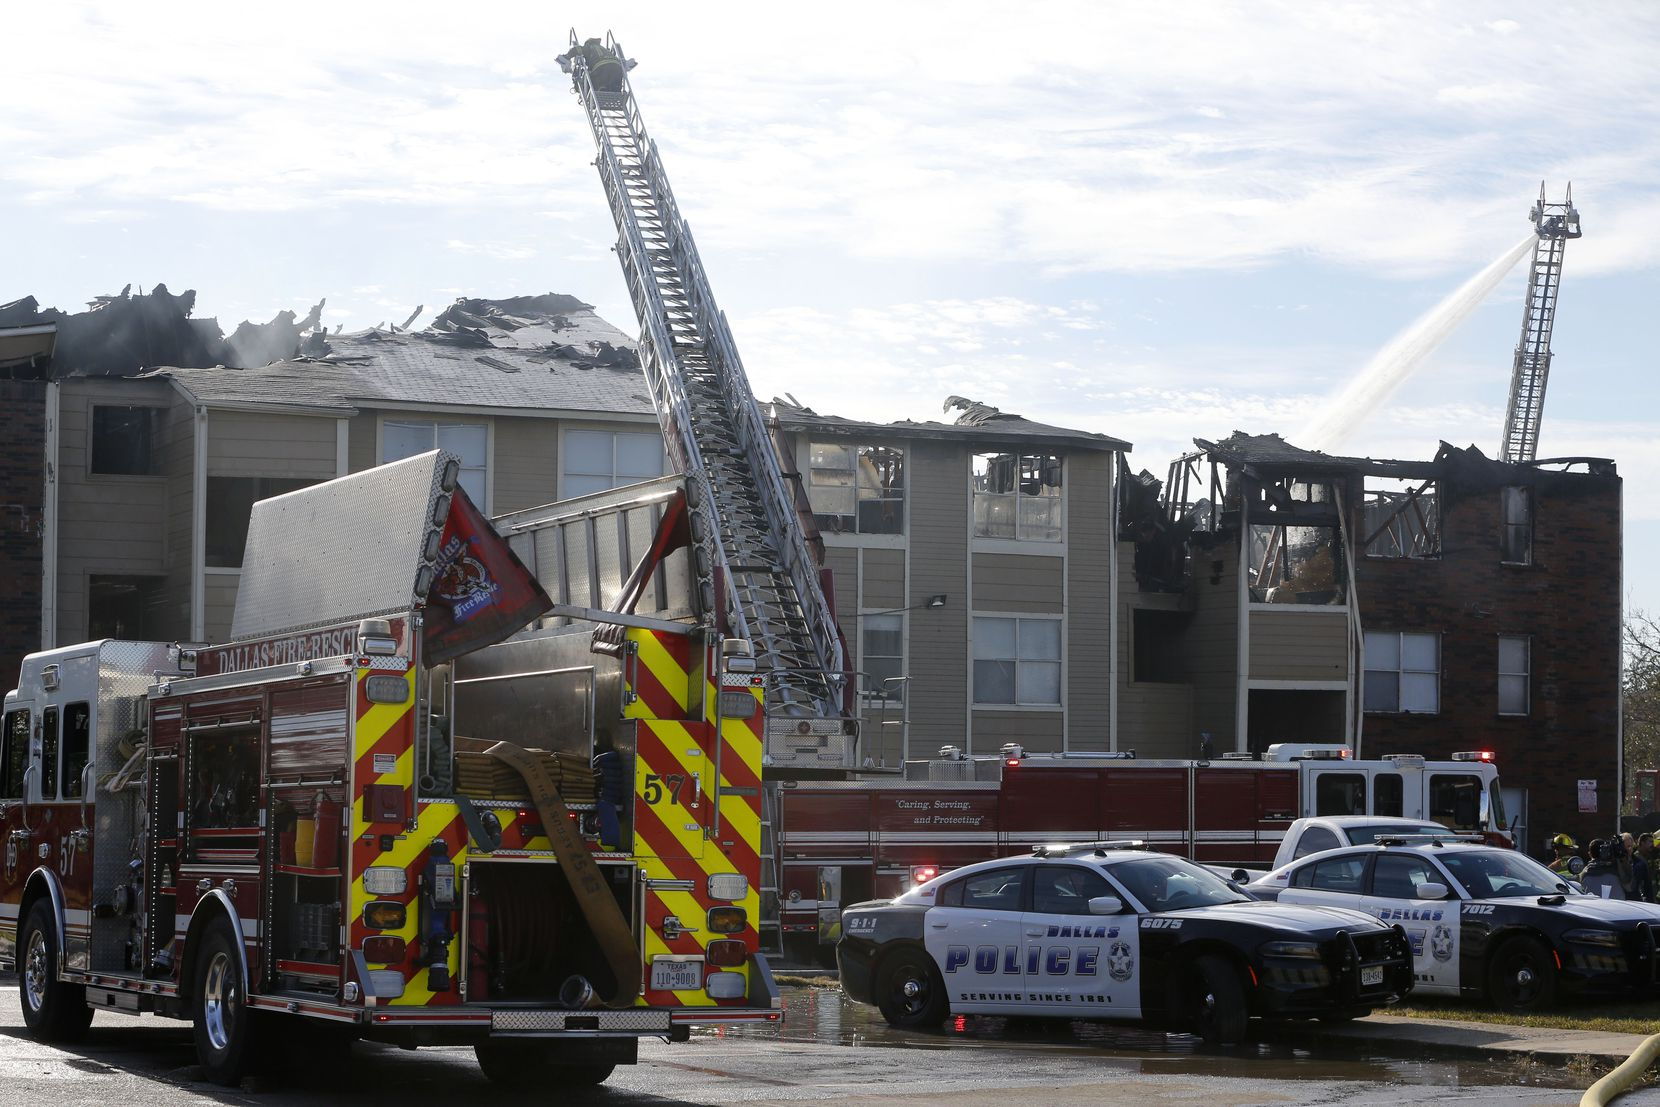 More than 50 firefighters were on the scene at the early morning apartment fire at the Meadows at Ferguson complex Wednesday.